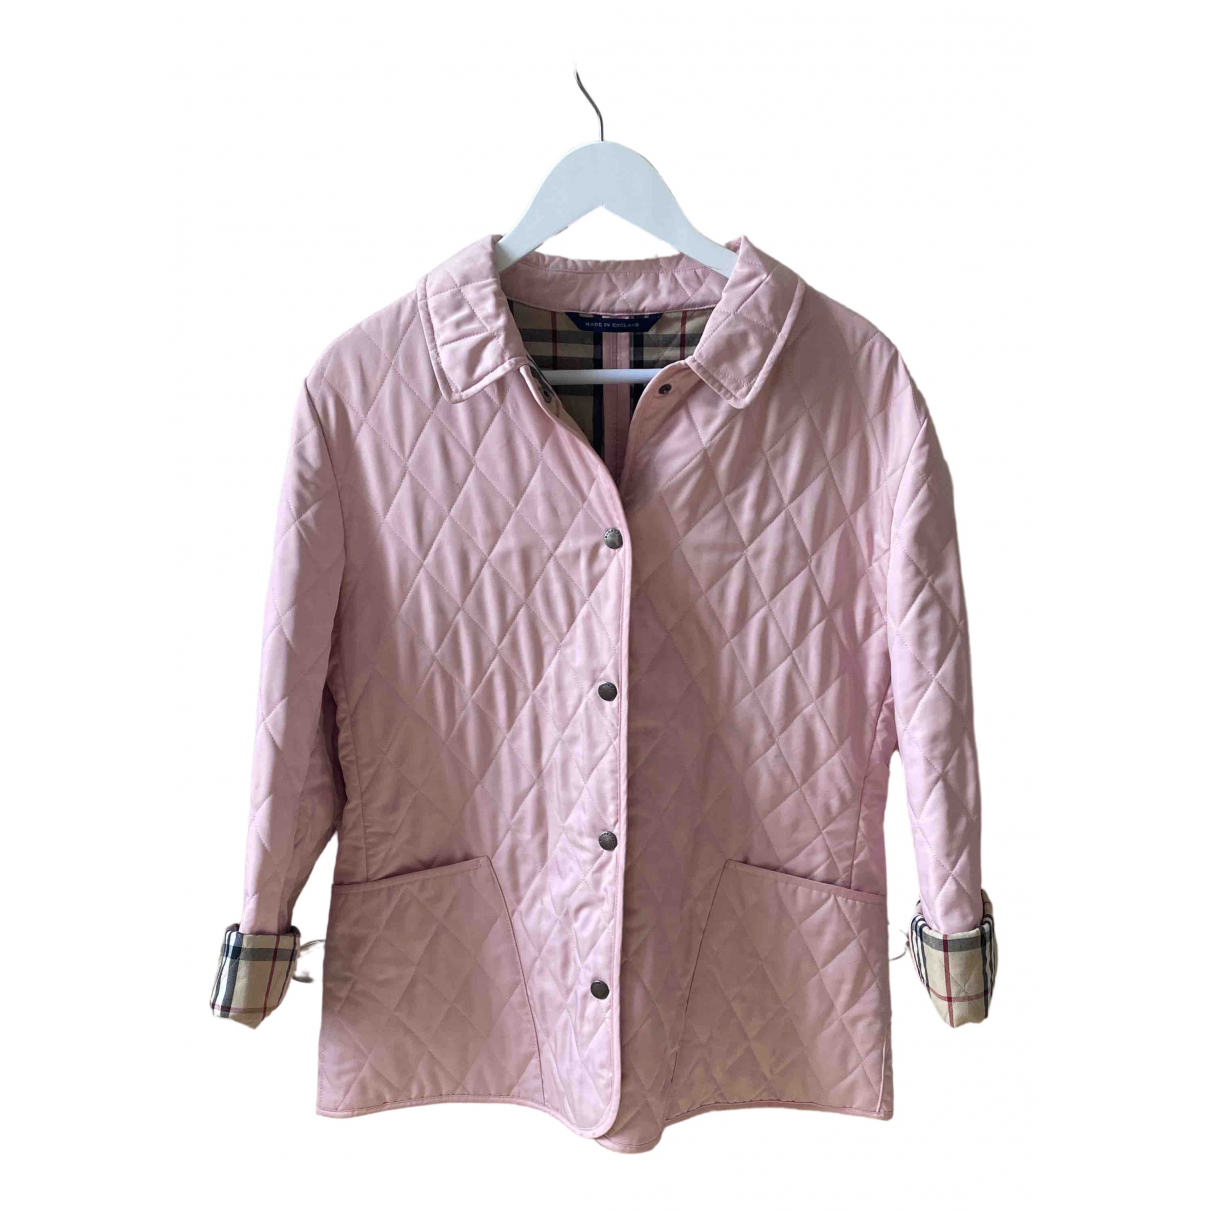 Burberry \N Jacke in  Rosa Polyester